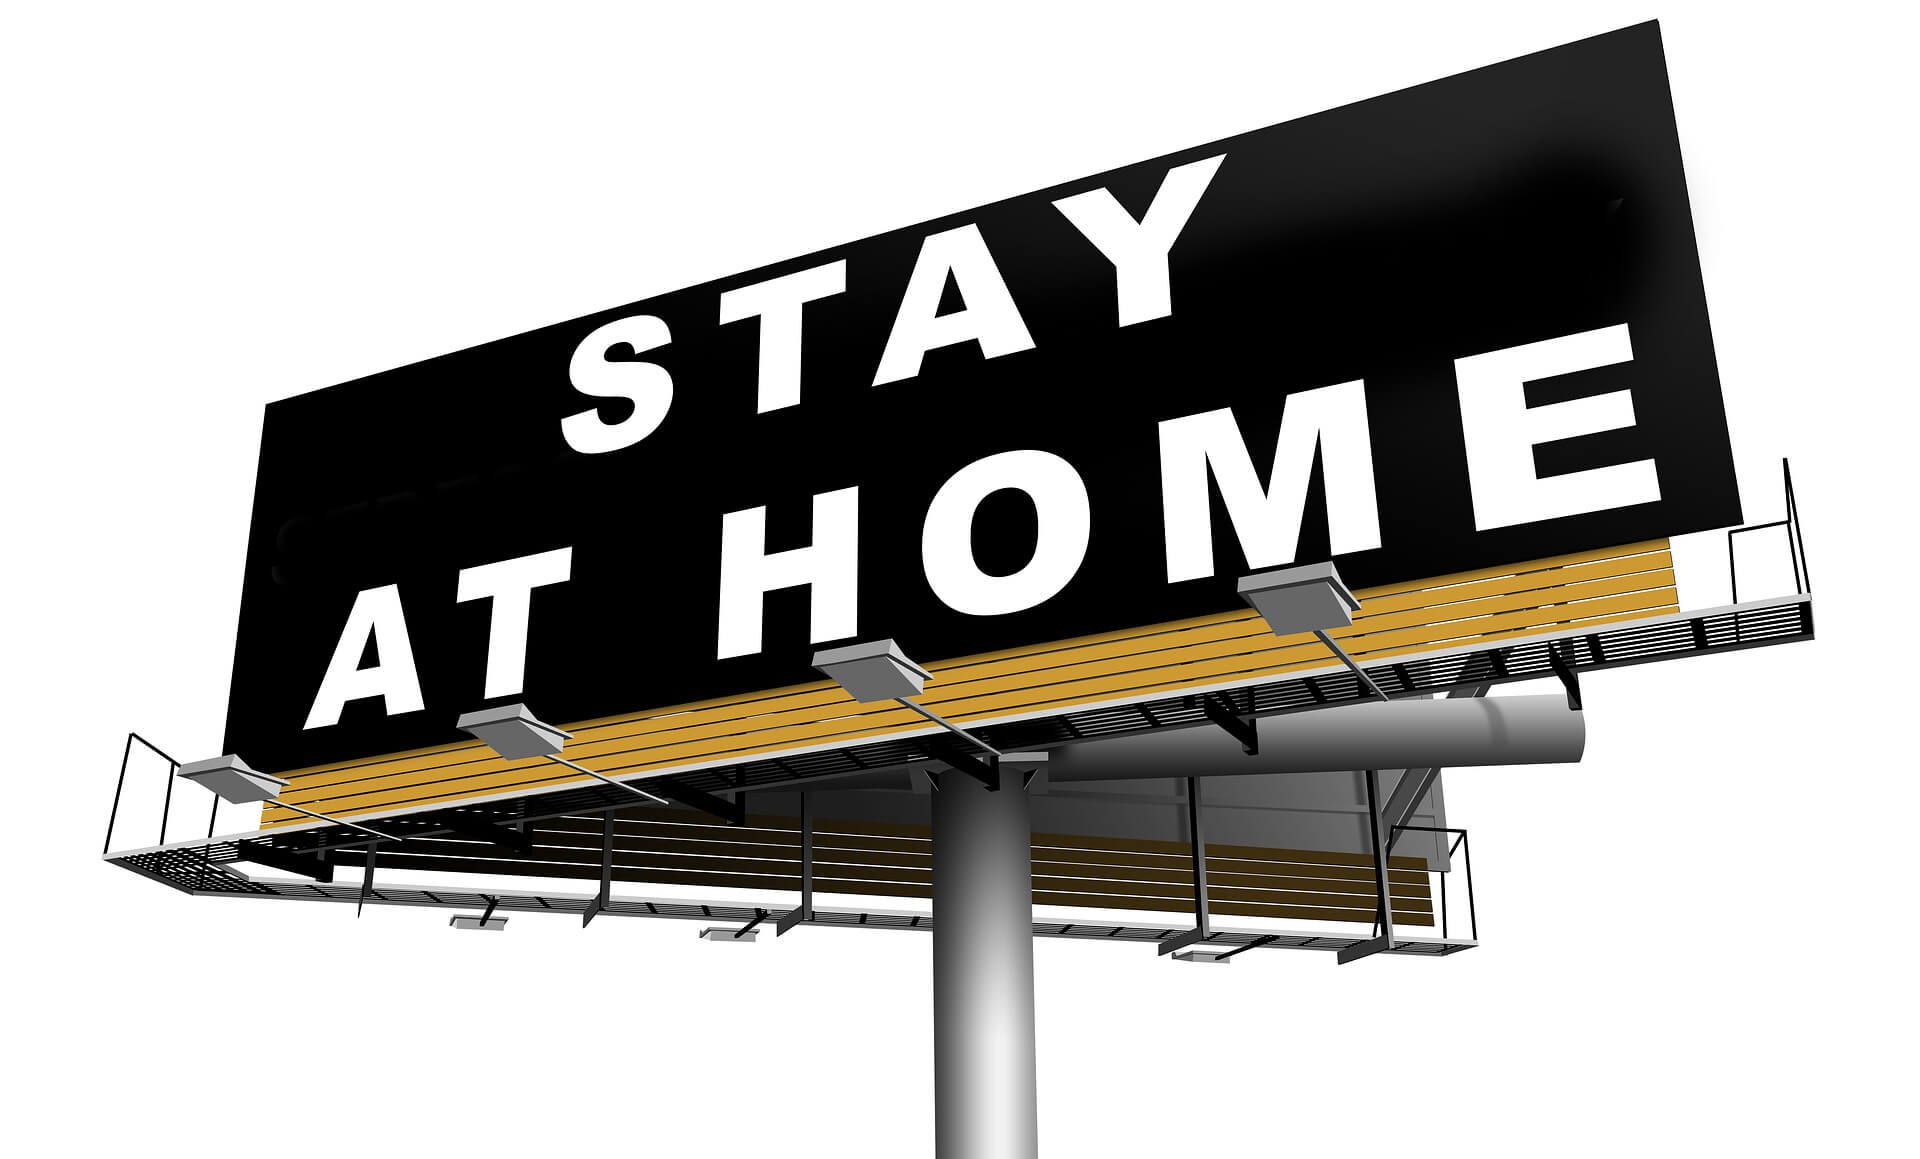 Stay at home sign